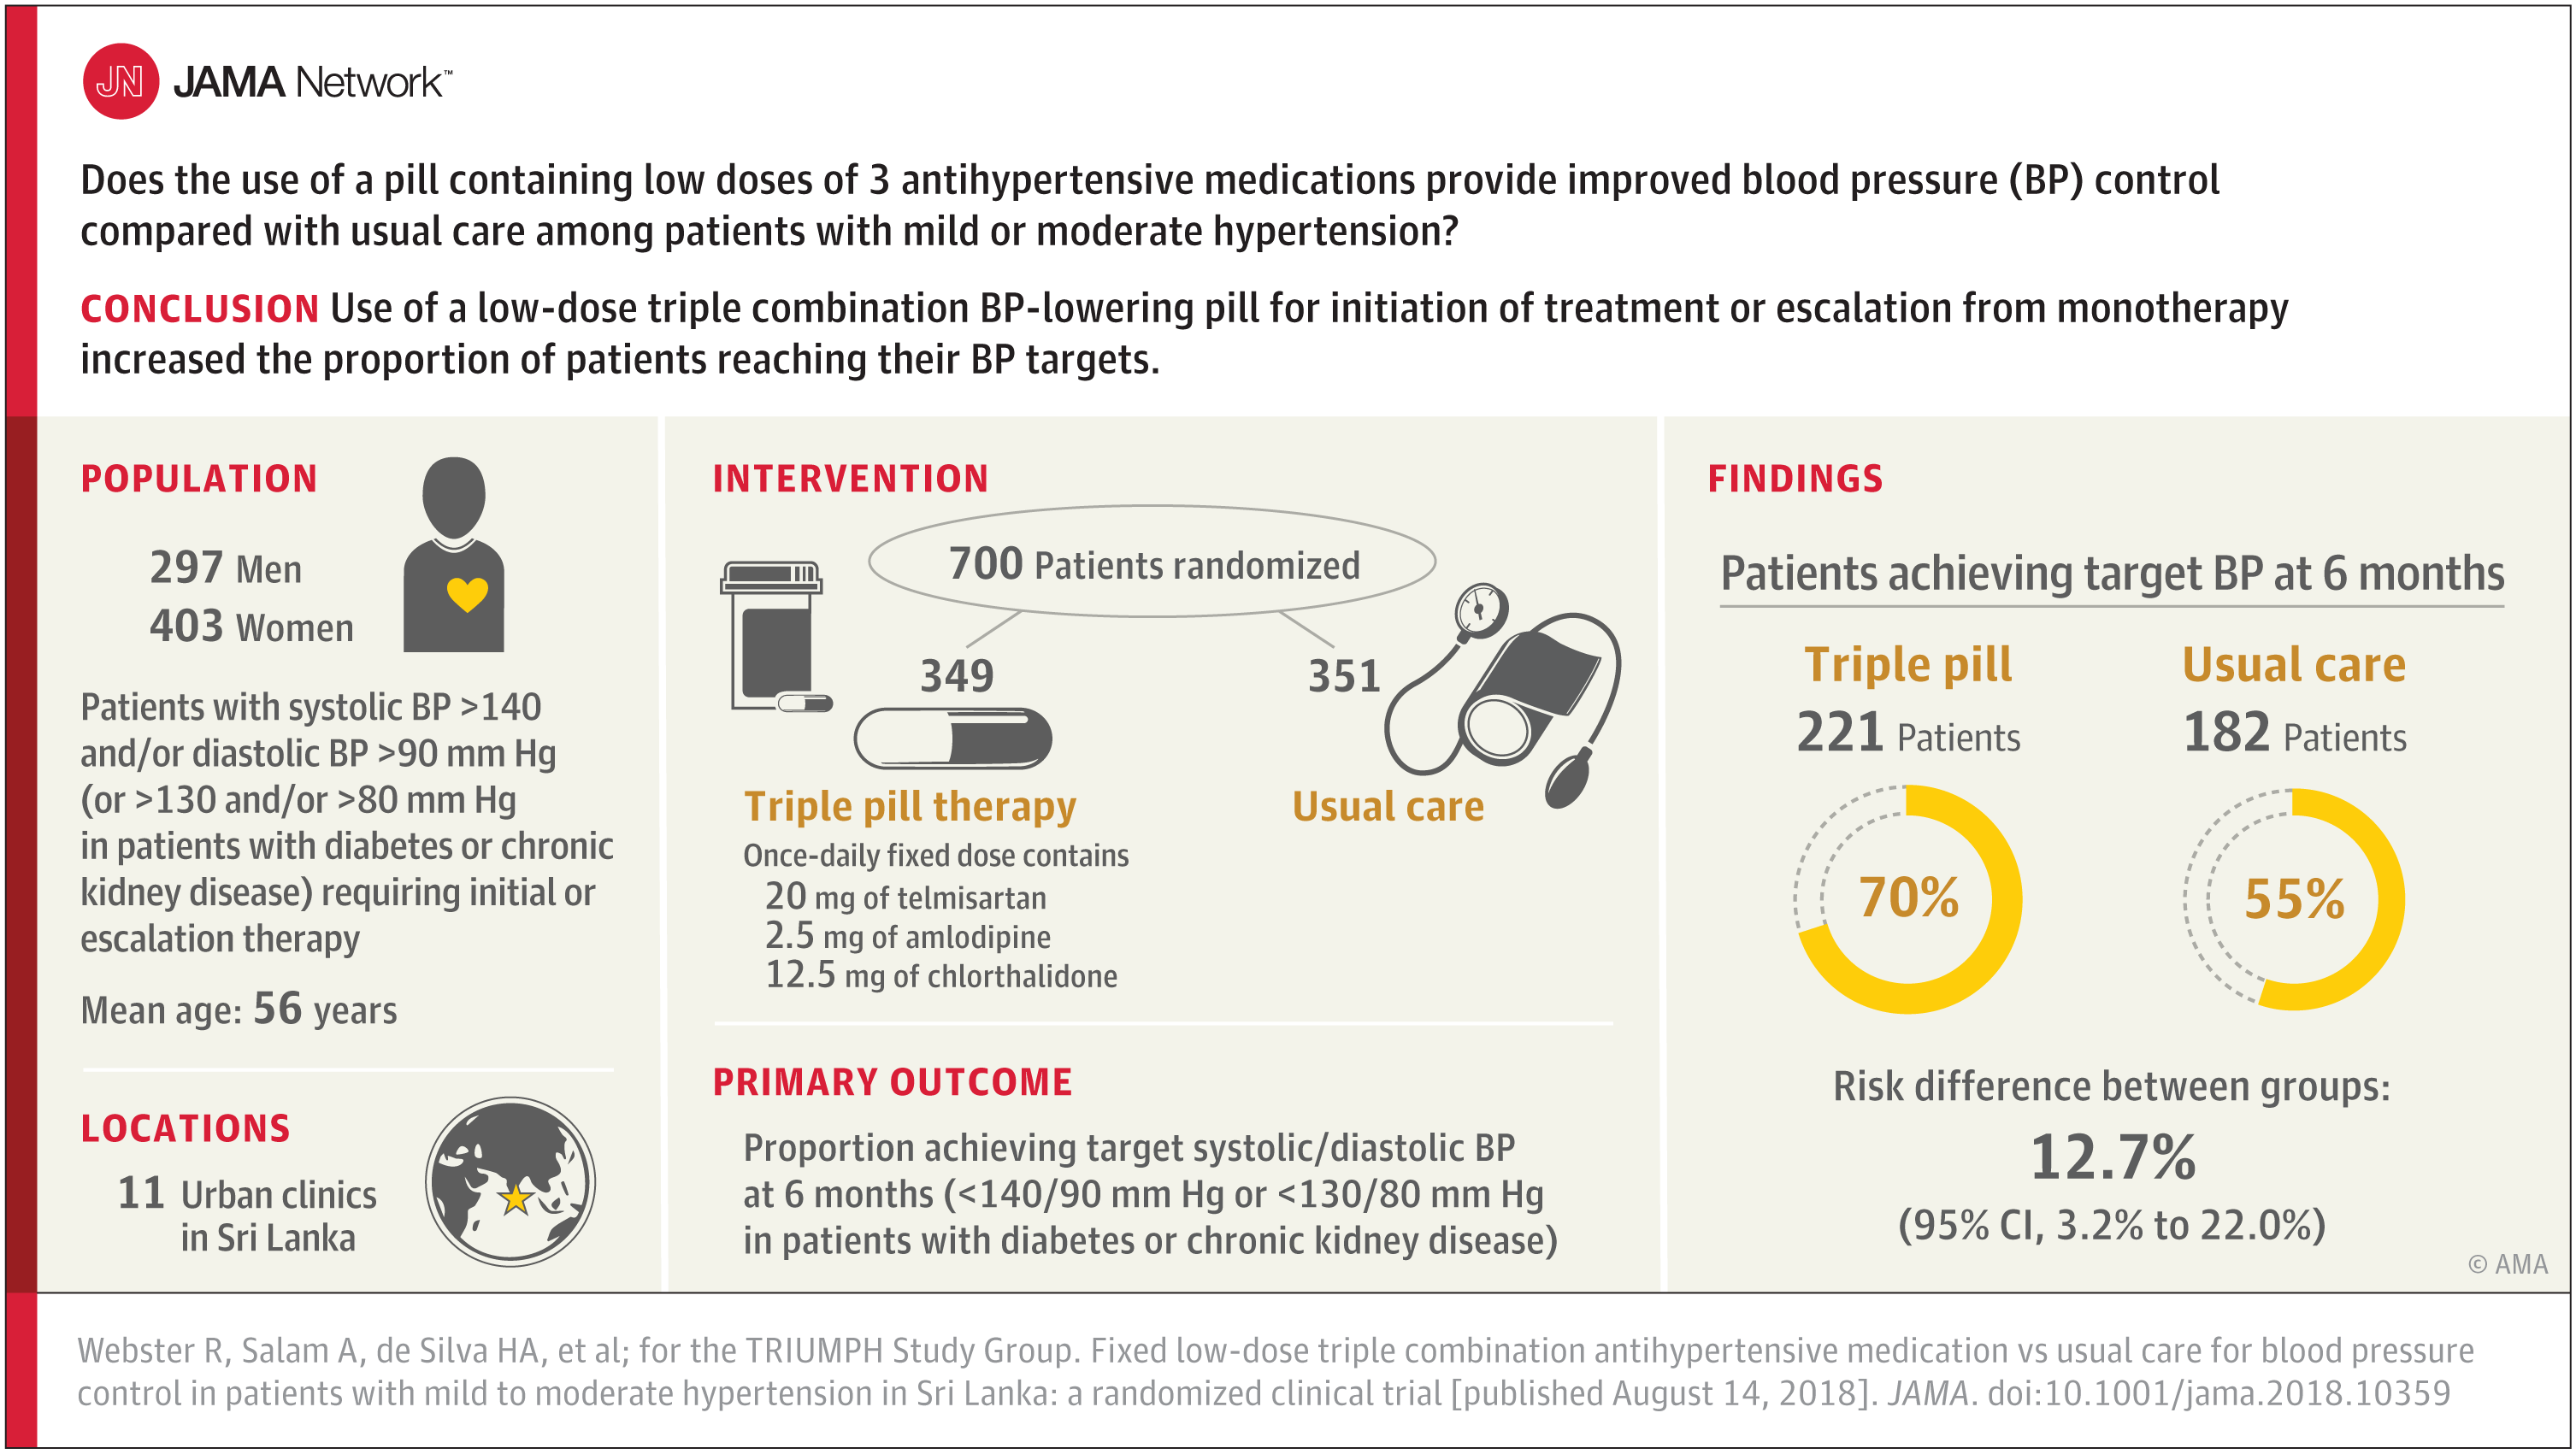 6cac2945f6 Fixed Low-Dose Triple Combination Antihypertensive Medication vs Usual Care  for Blood Pressure Control